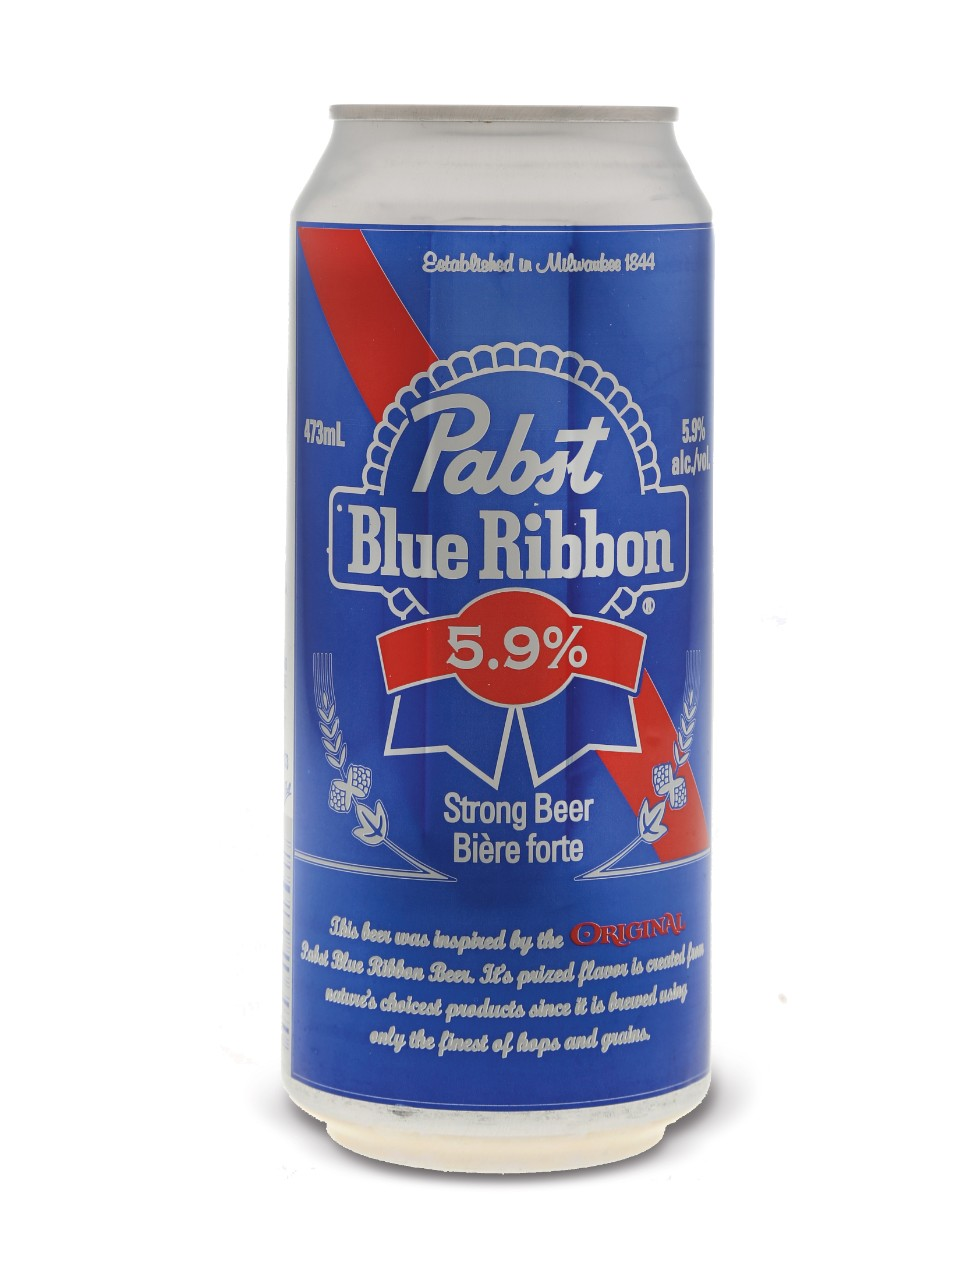 Pabst Blue Ribbon 5.9% from LCBO